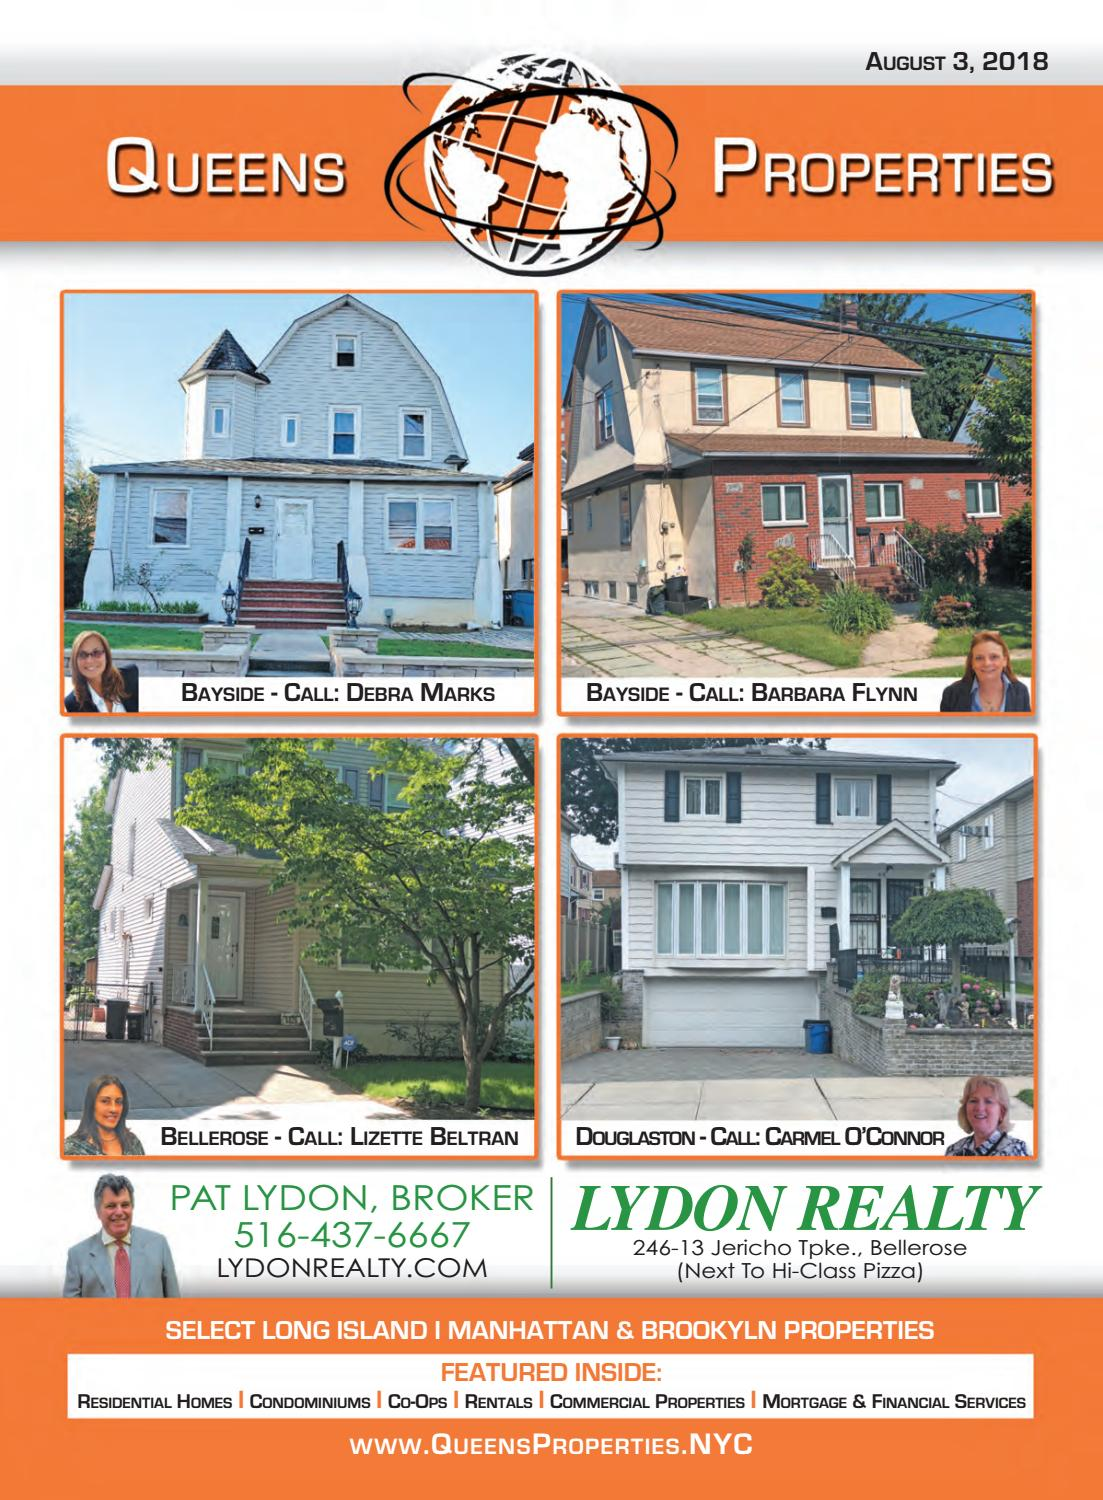 Queens Ny August 3 2018 Queens Properties Magazine By Queens Properties Magazine Issuu